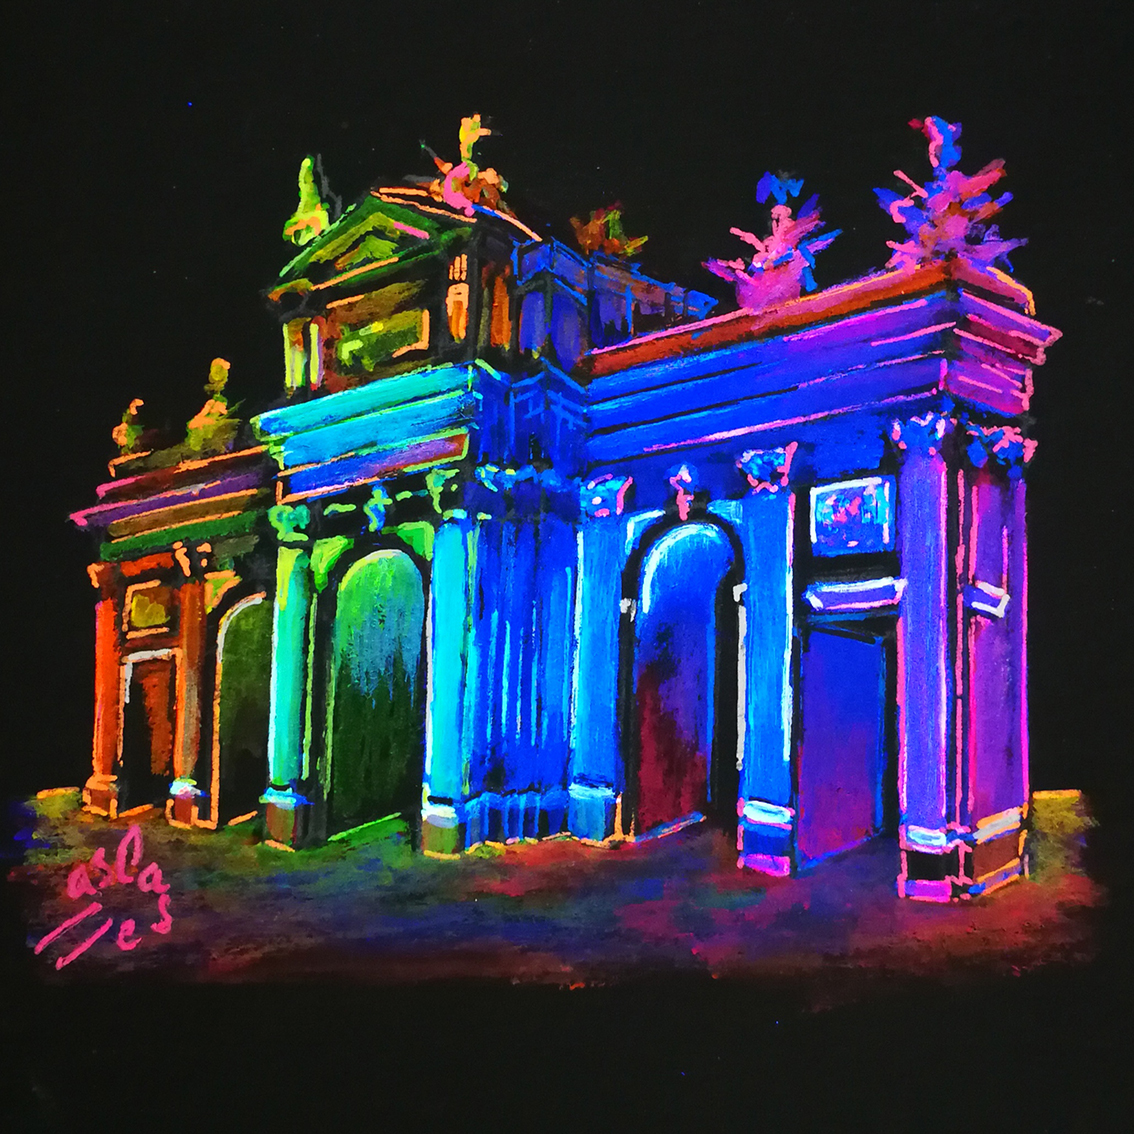 Puerta-de-Alcala.-Fluorescent-Illustrations.-Night-City-Lights-Collection-by-Vicky-Casellas.-Fluorescent-art